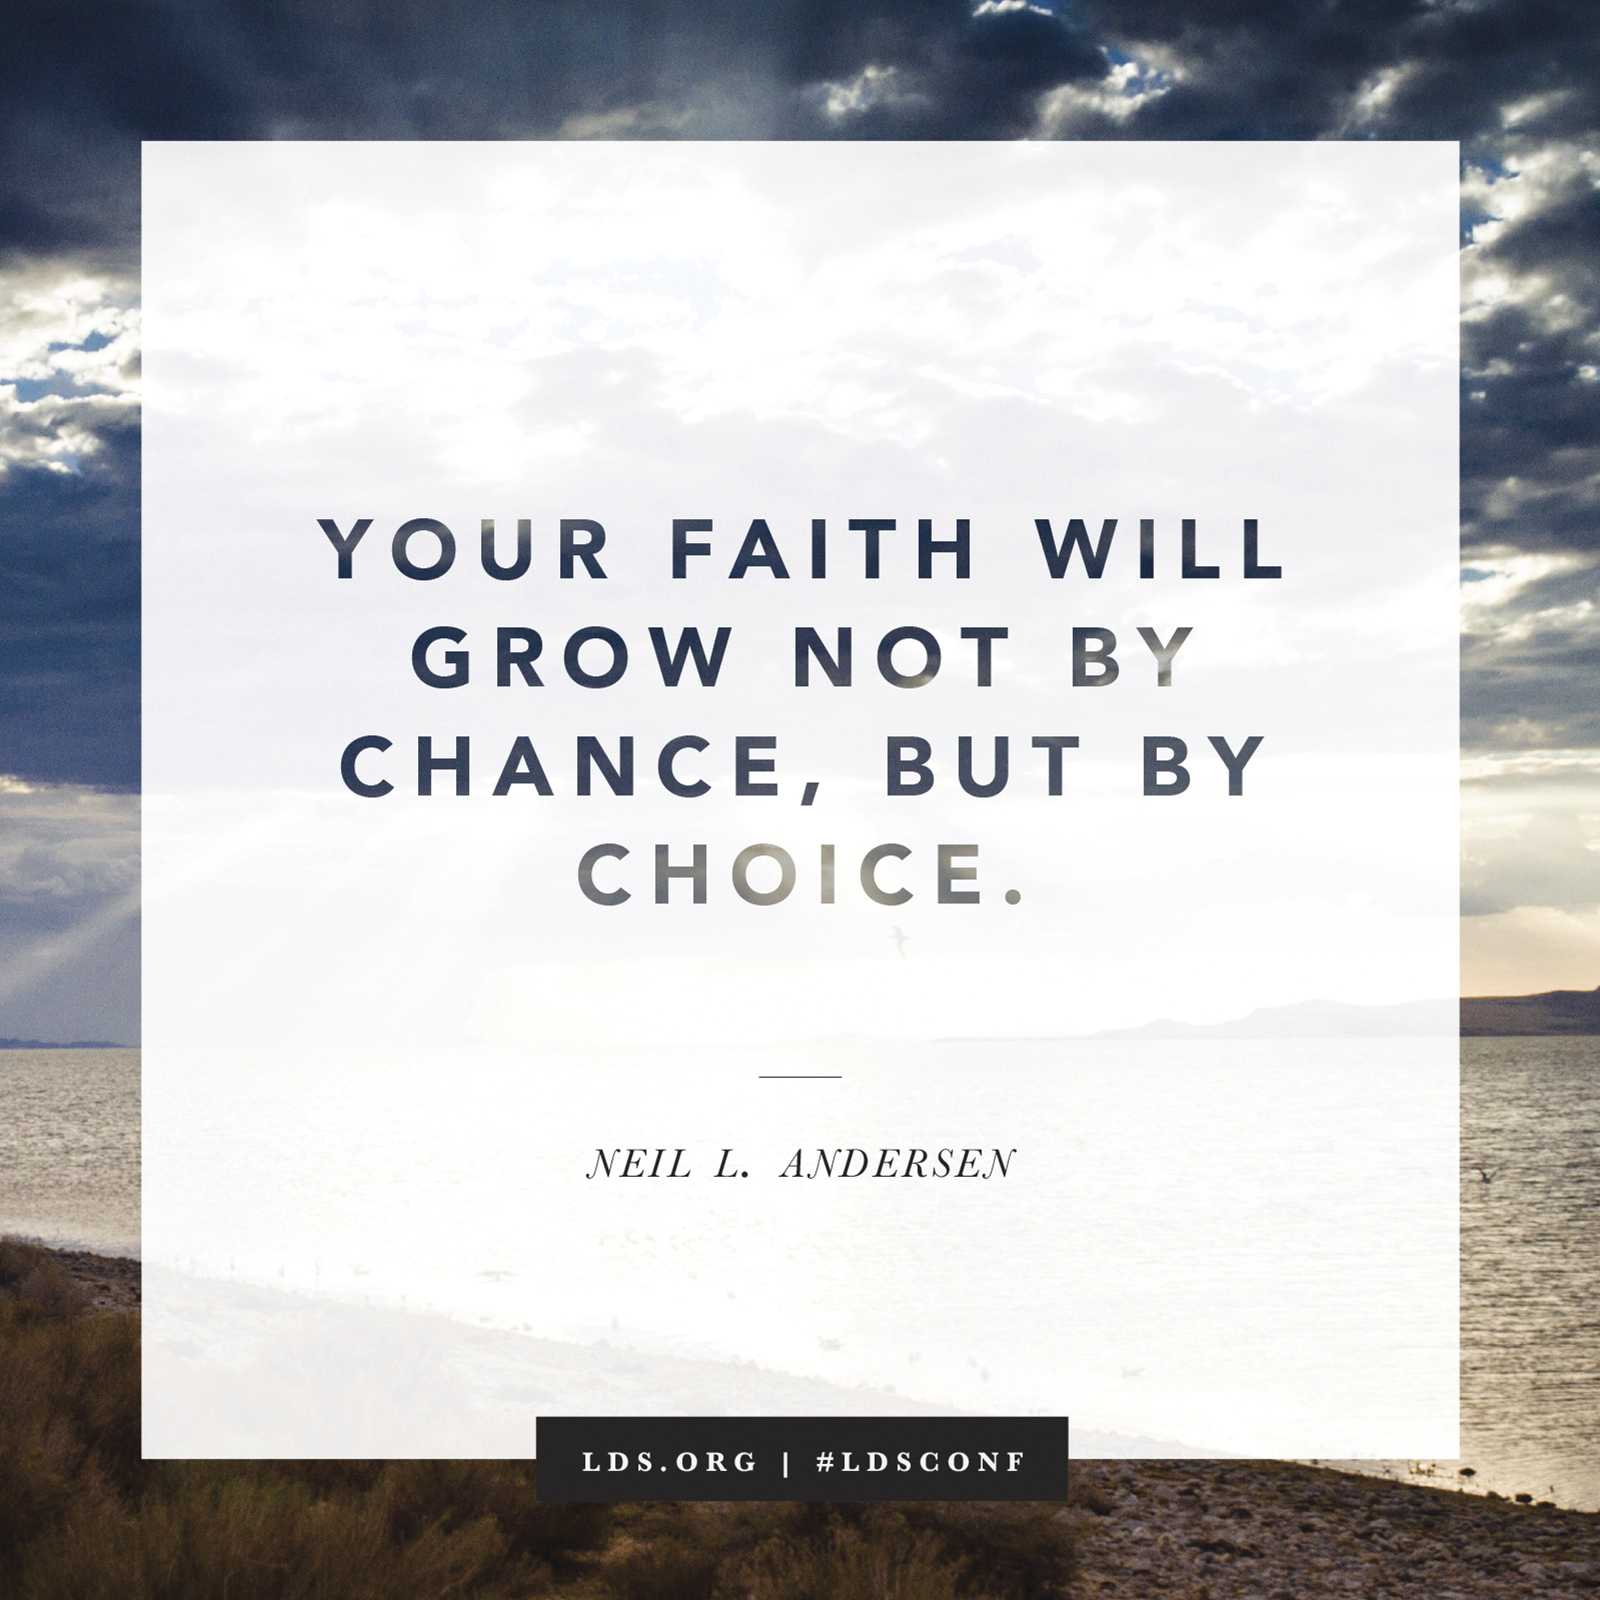 """""""Your faith will grow not by chance, but by choice."""" —Elder Neil L. Andersen, """"Faith Is Not by Chance, but by Choice"""""""